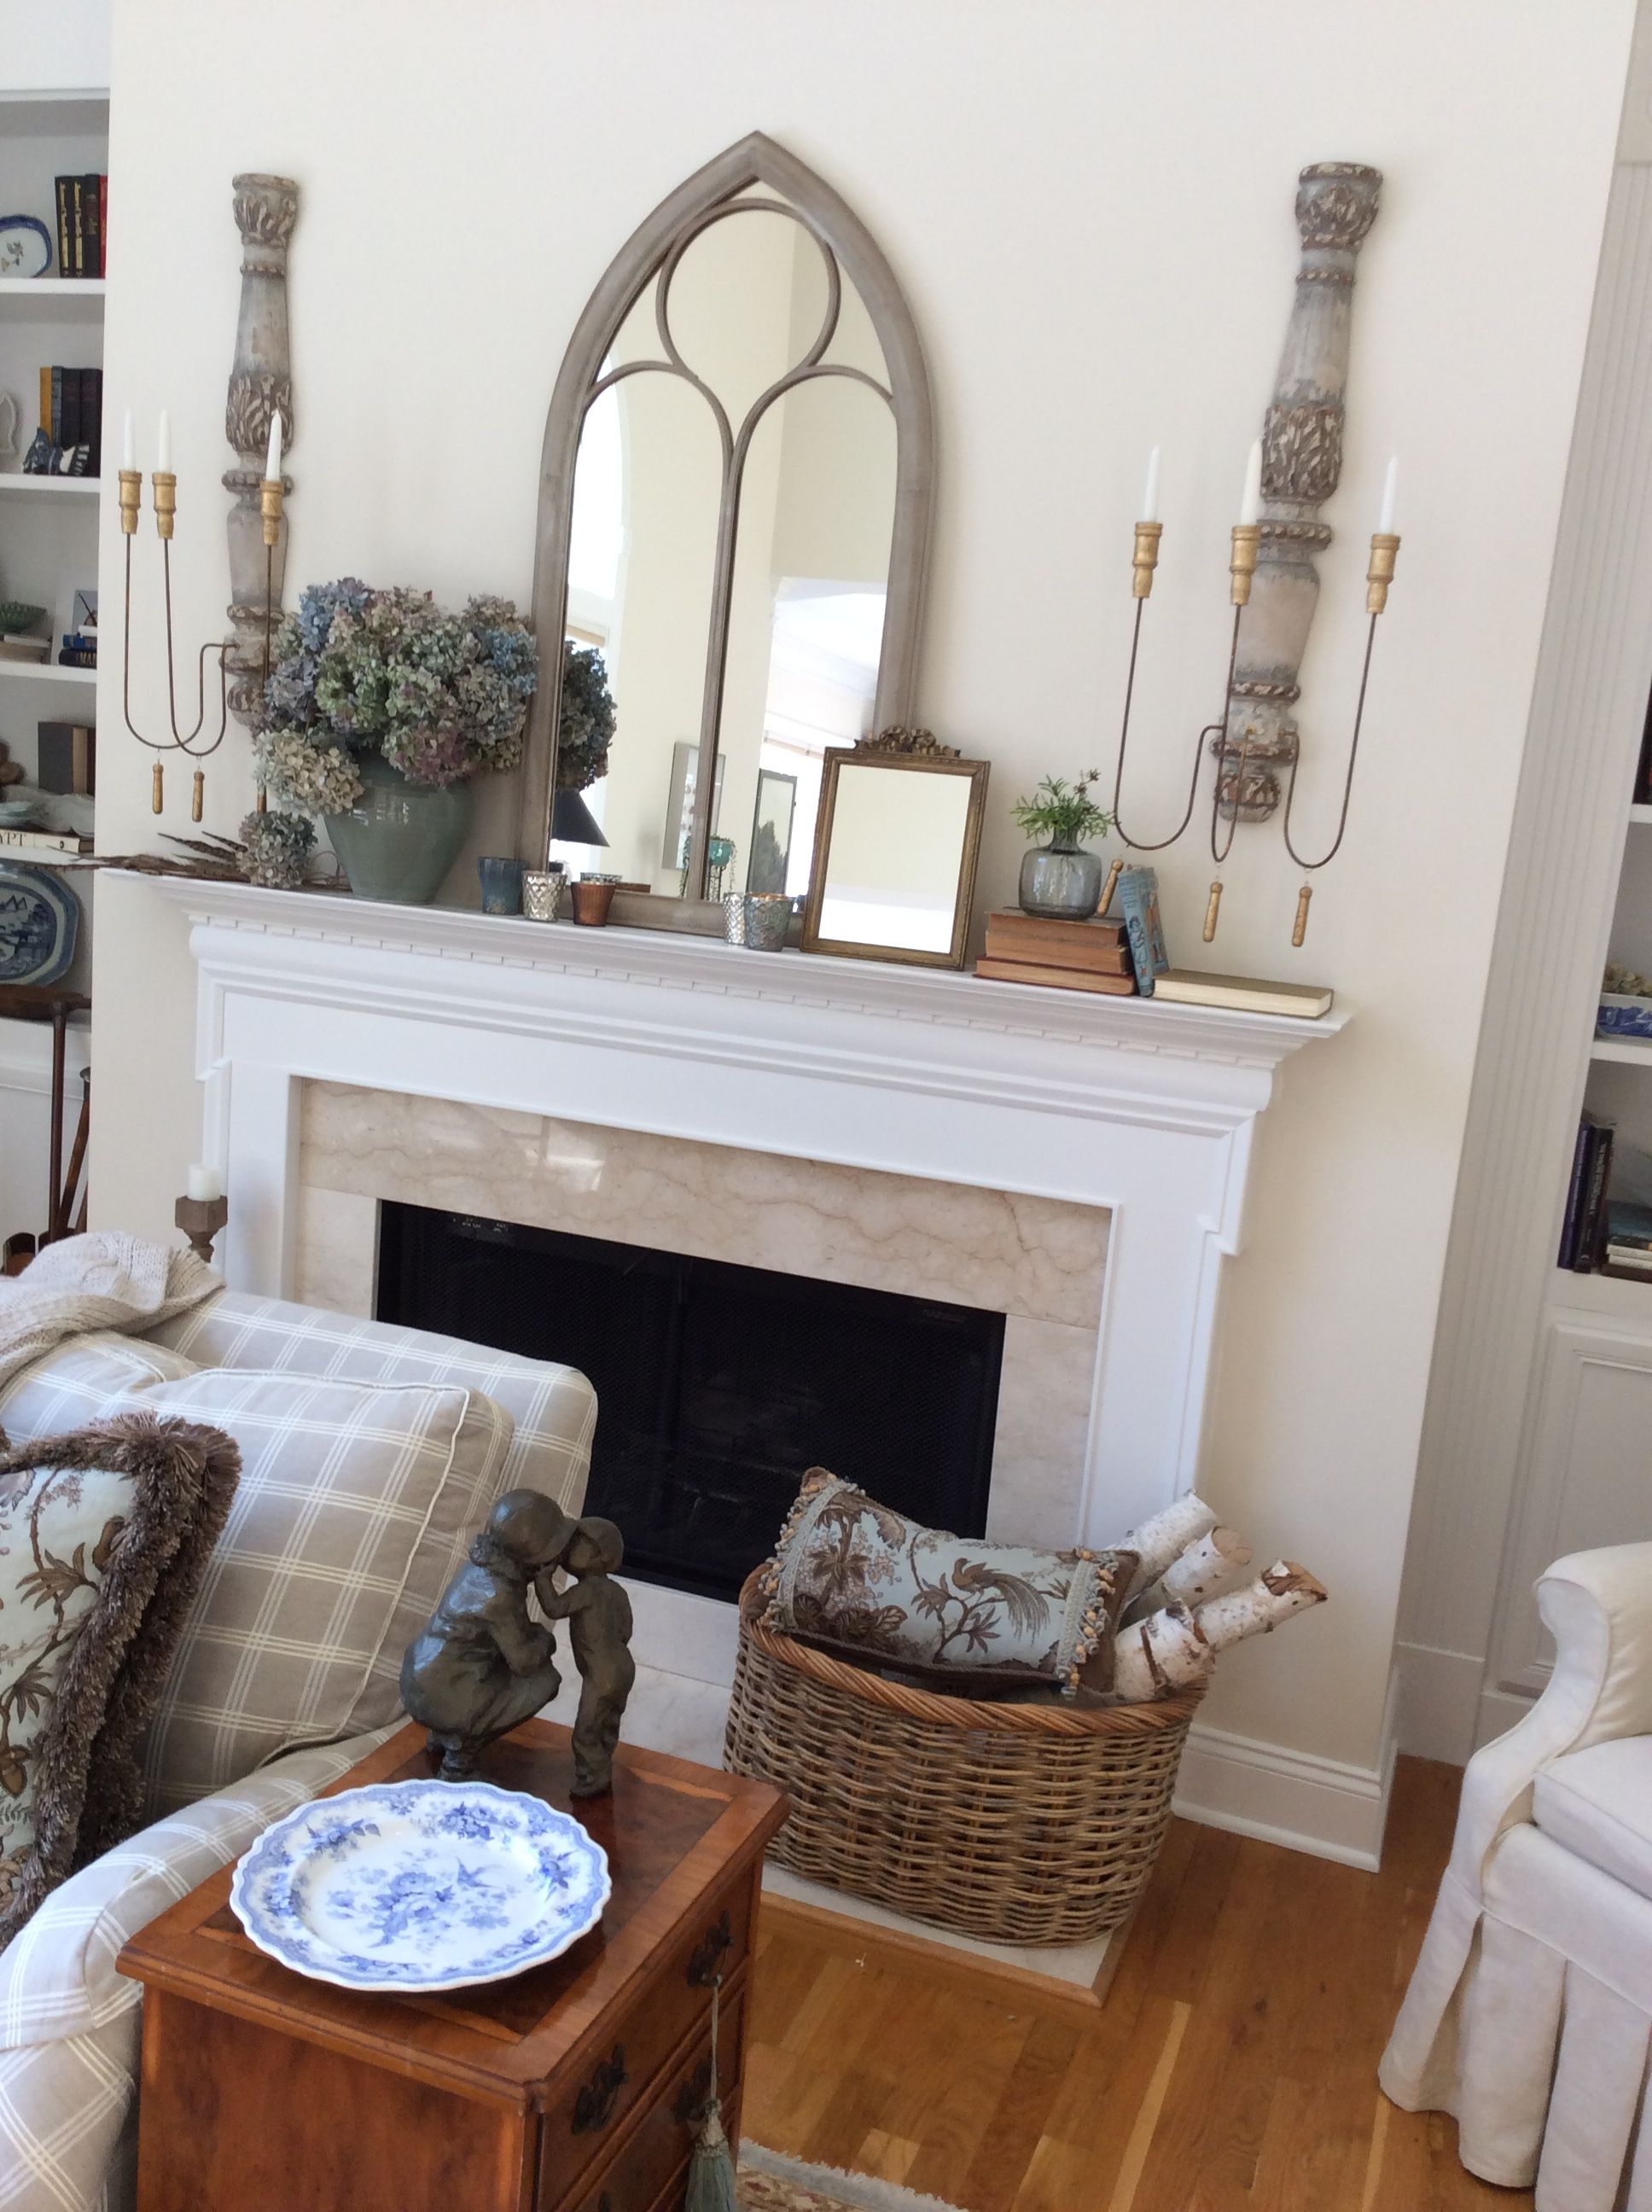 Mantles French Country Tennessee Fireplaces Nest Shabby Chic Home Decor Fire Places Homemade